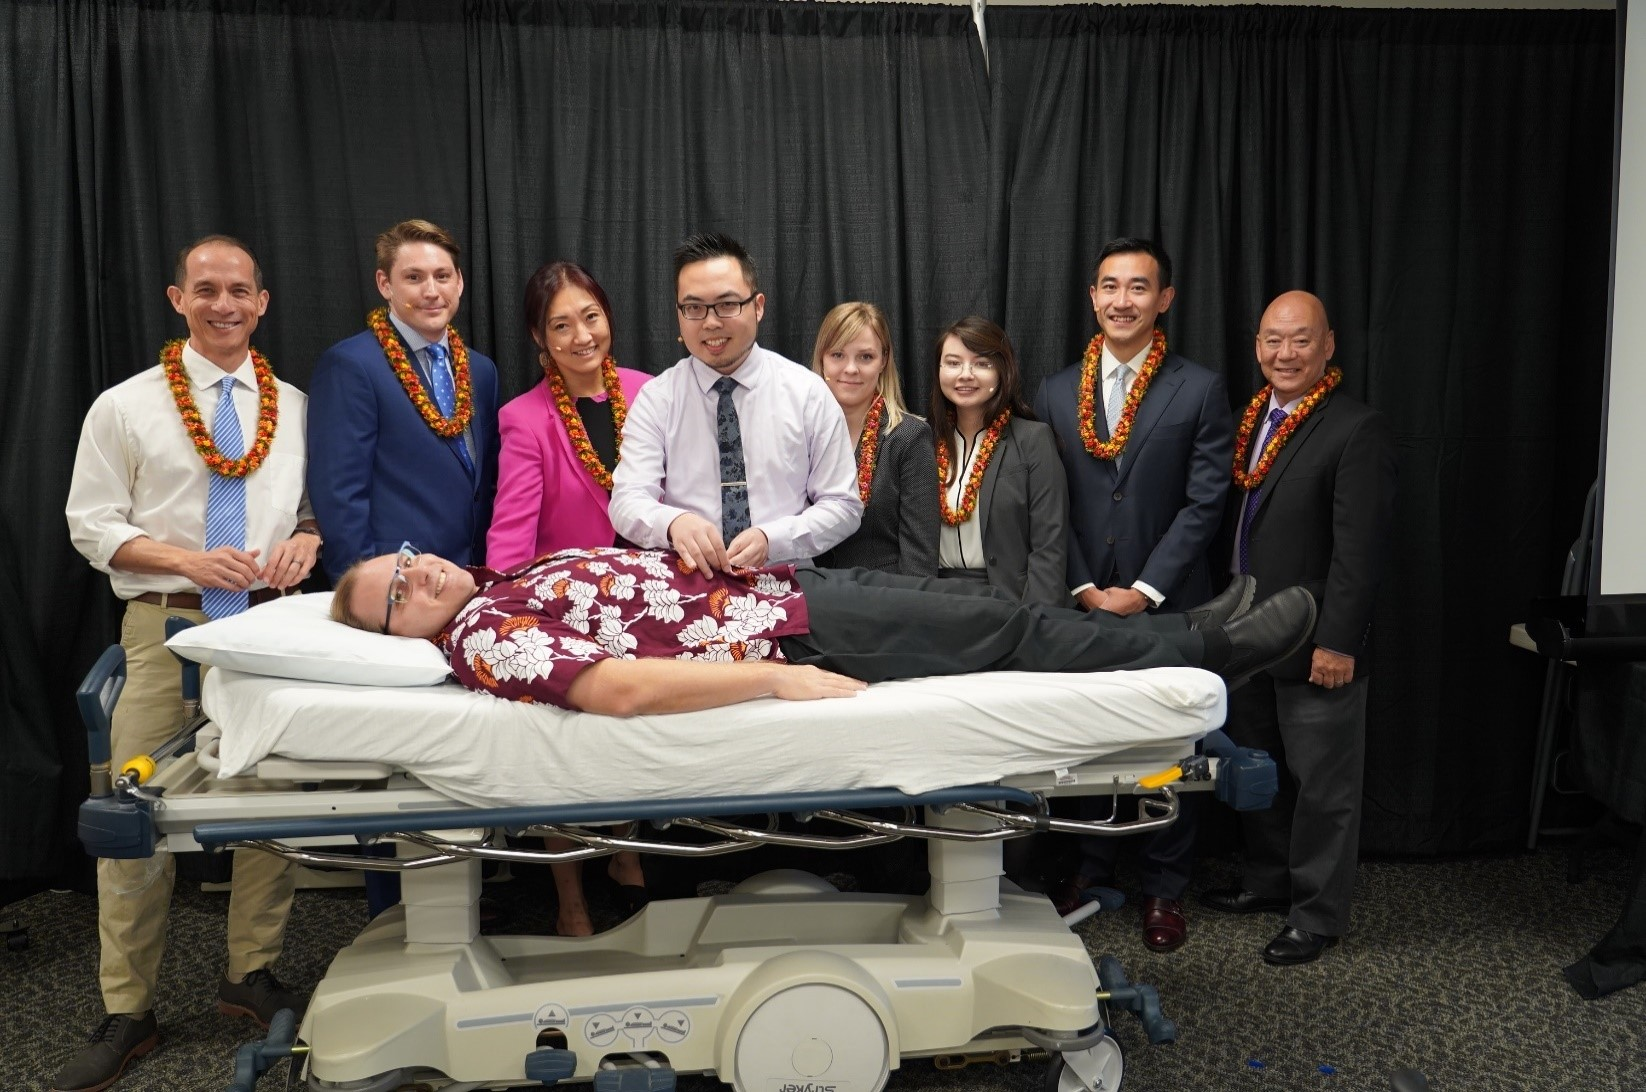 "Pictured, L-R (Standing): Tarquin Collis, MD (AMD, Medical Specialties; Chief, Infectious Disease); John Neighbors, MD; Diana Kim, MD; Henry Lew, MD (Chief Resident, Inpatient); Patrycja Ashley, MD; Katharine Wong, MD;Yue ""Lei"" Fang, MD; Mitch Motooka, MD (Program Director). (Lying Down): Philip Verhoef, MD, PhD (Assoc Program Director)."